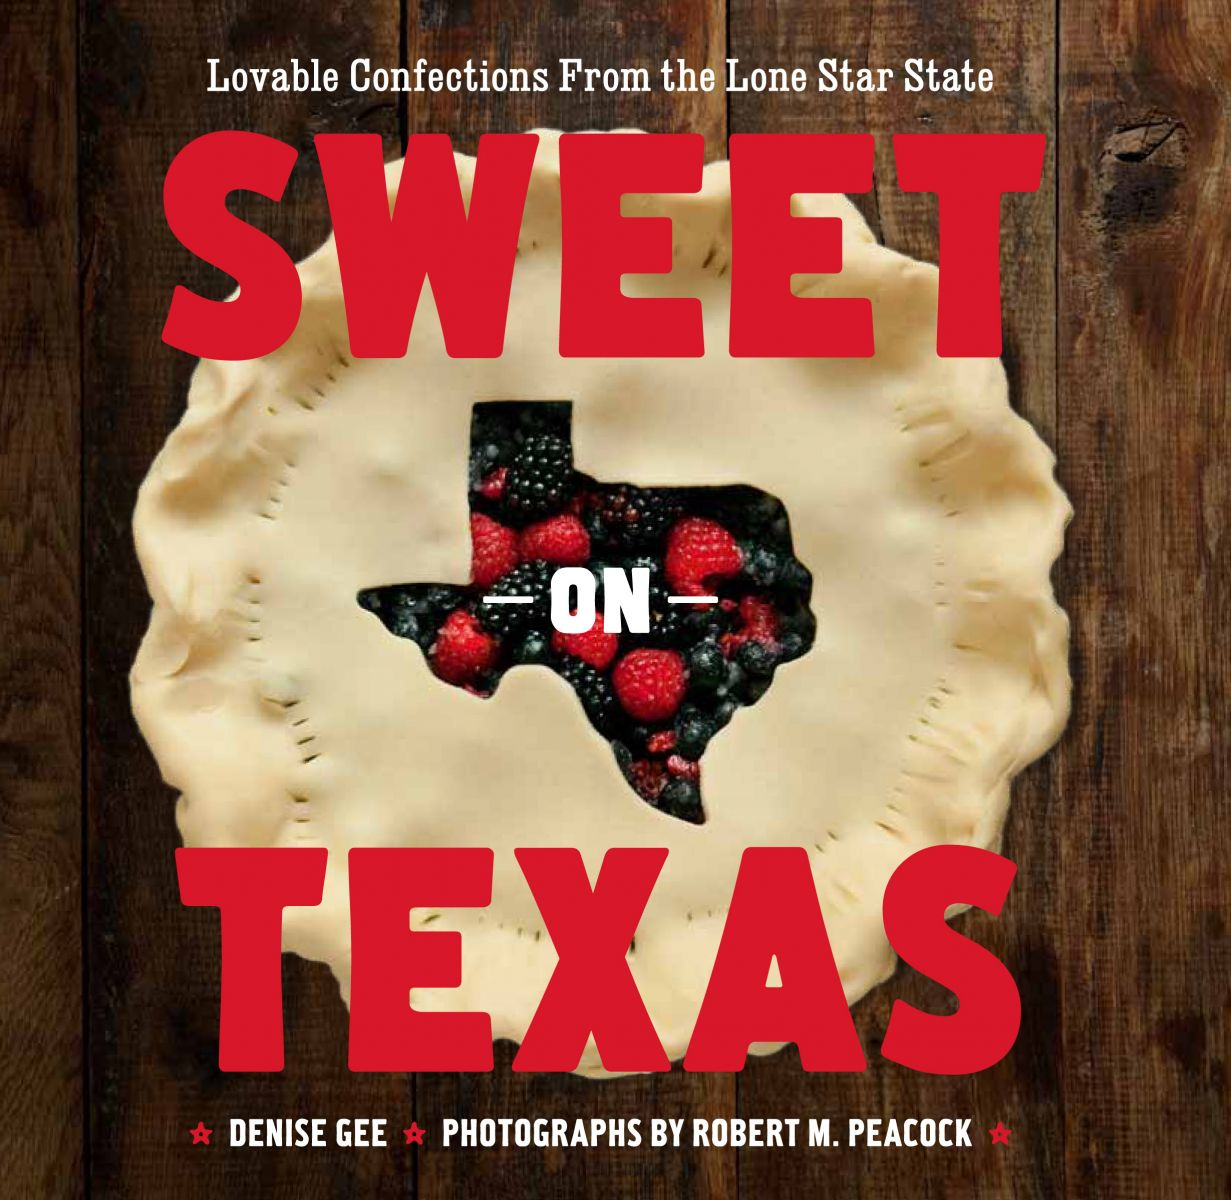 Sweet on Texas by Denise Gee